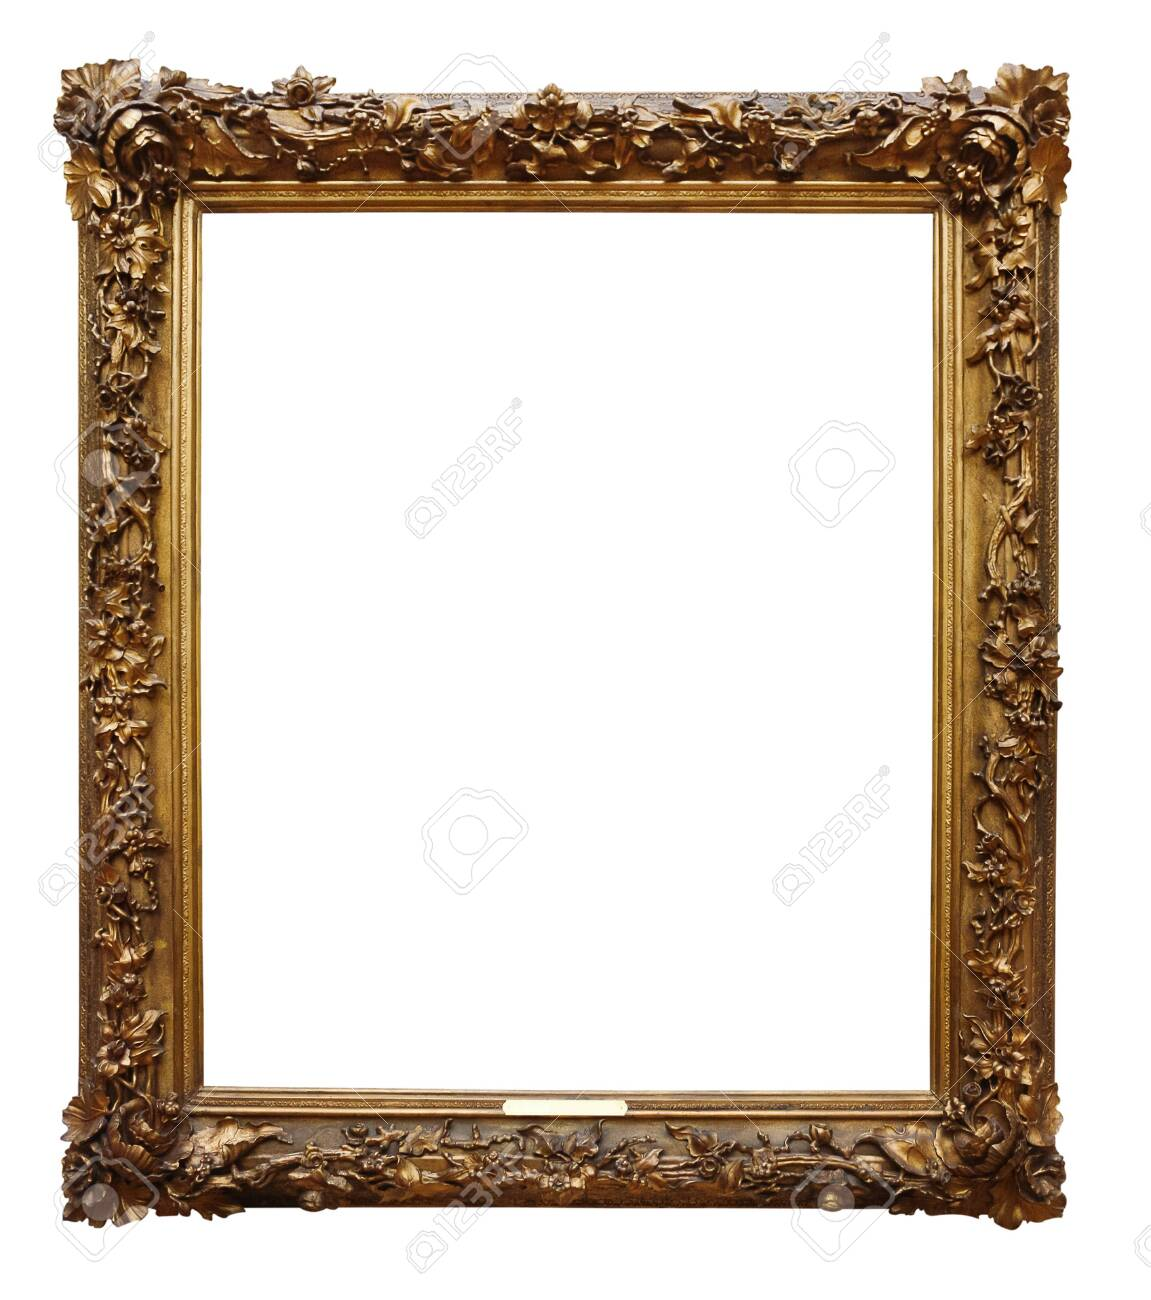 Picture gold wooden frame for design on white isolated background - 135593745